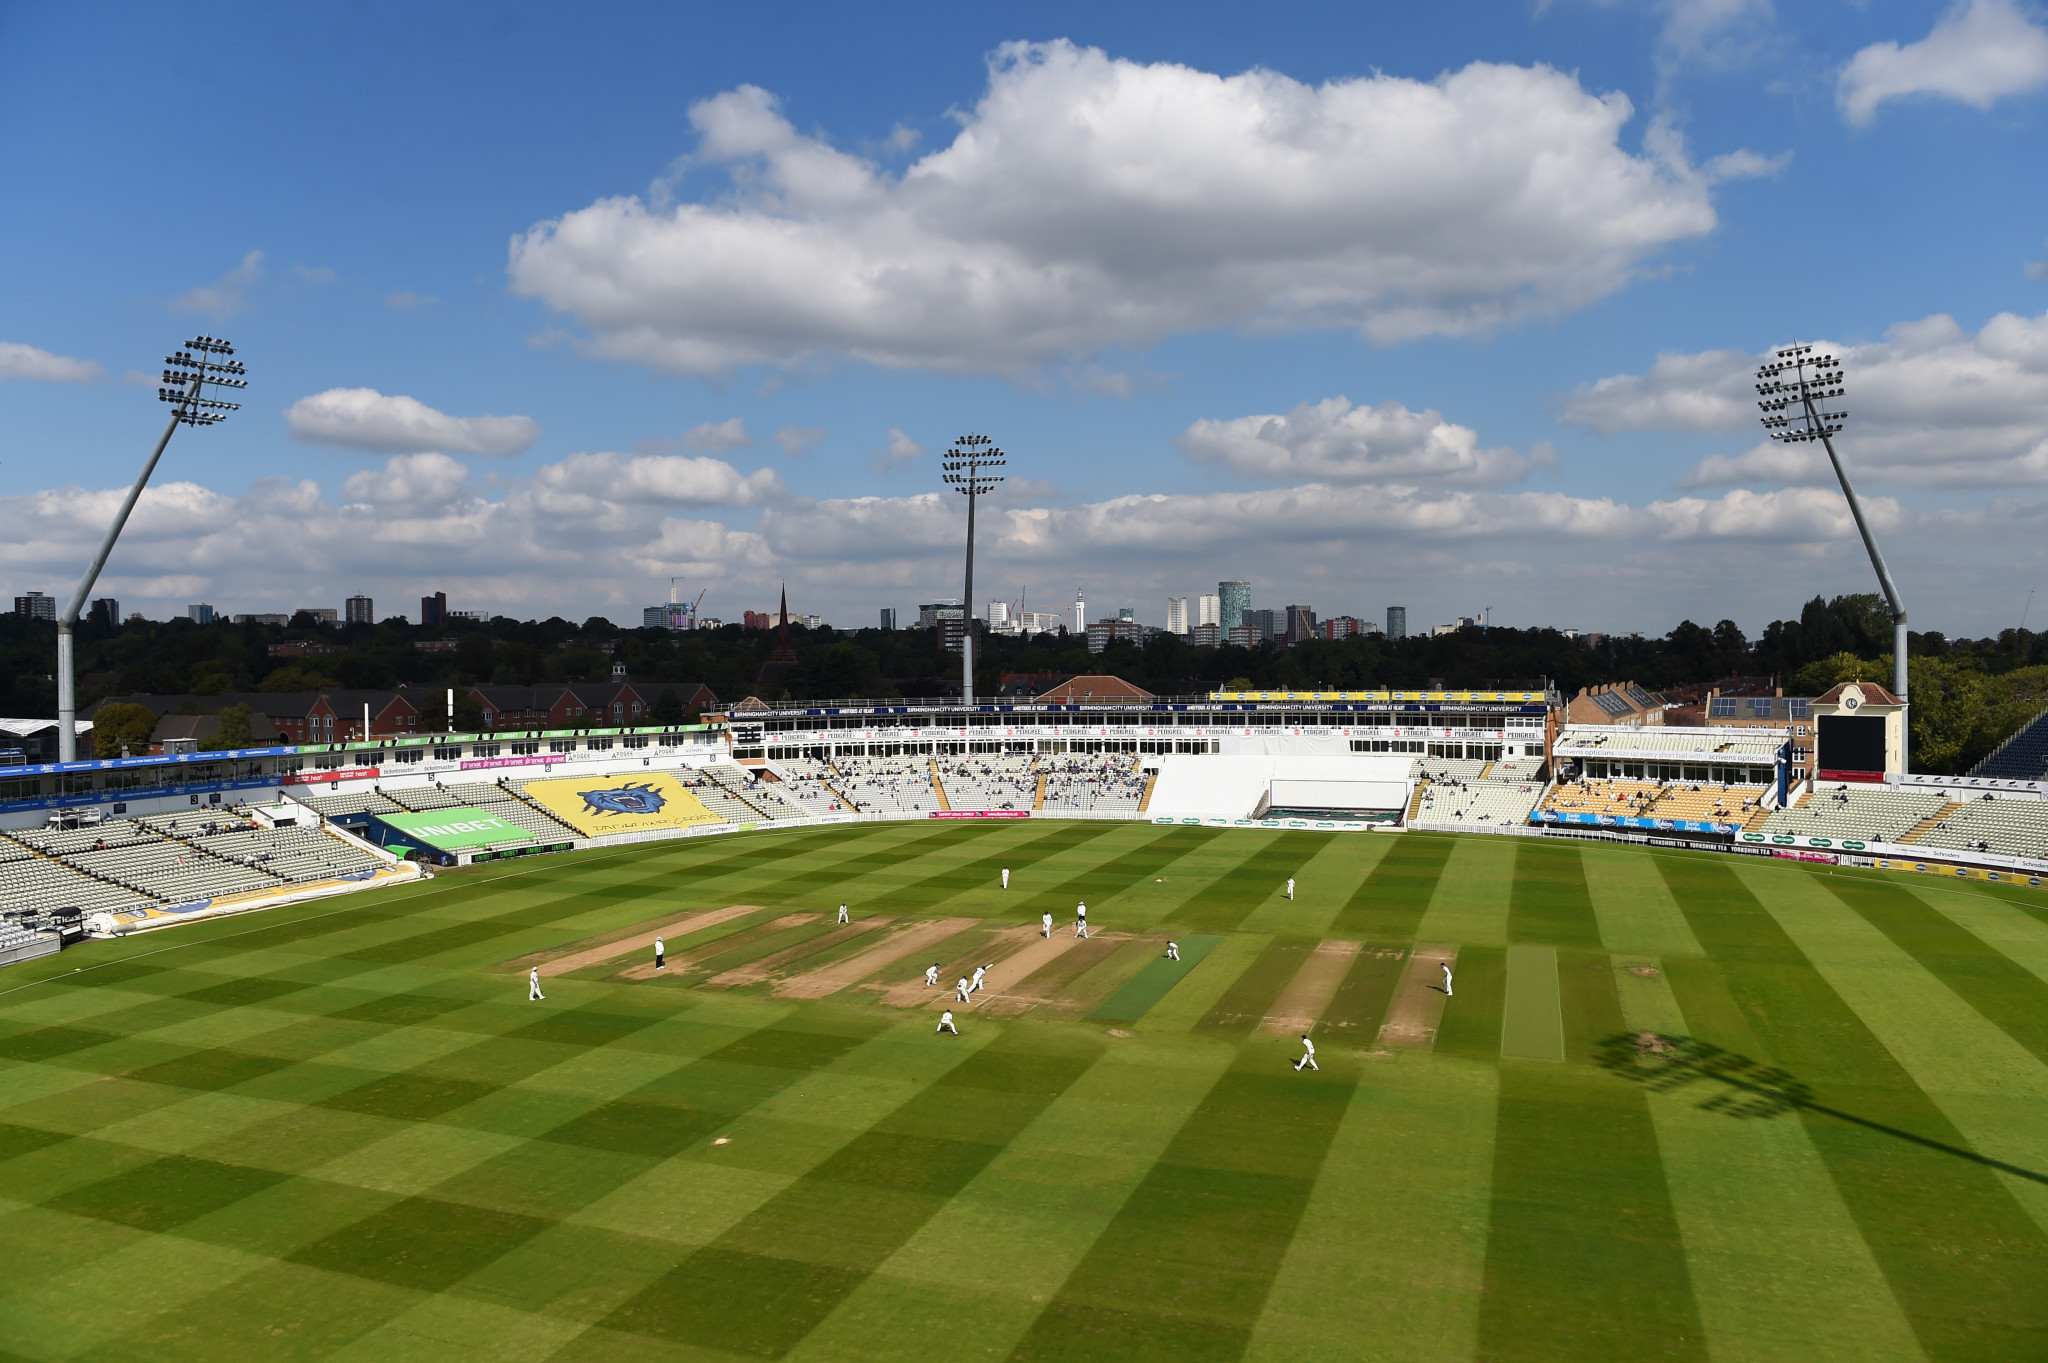 Winvic earns contract to transform Edgbaston in time for Birmingham 2022